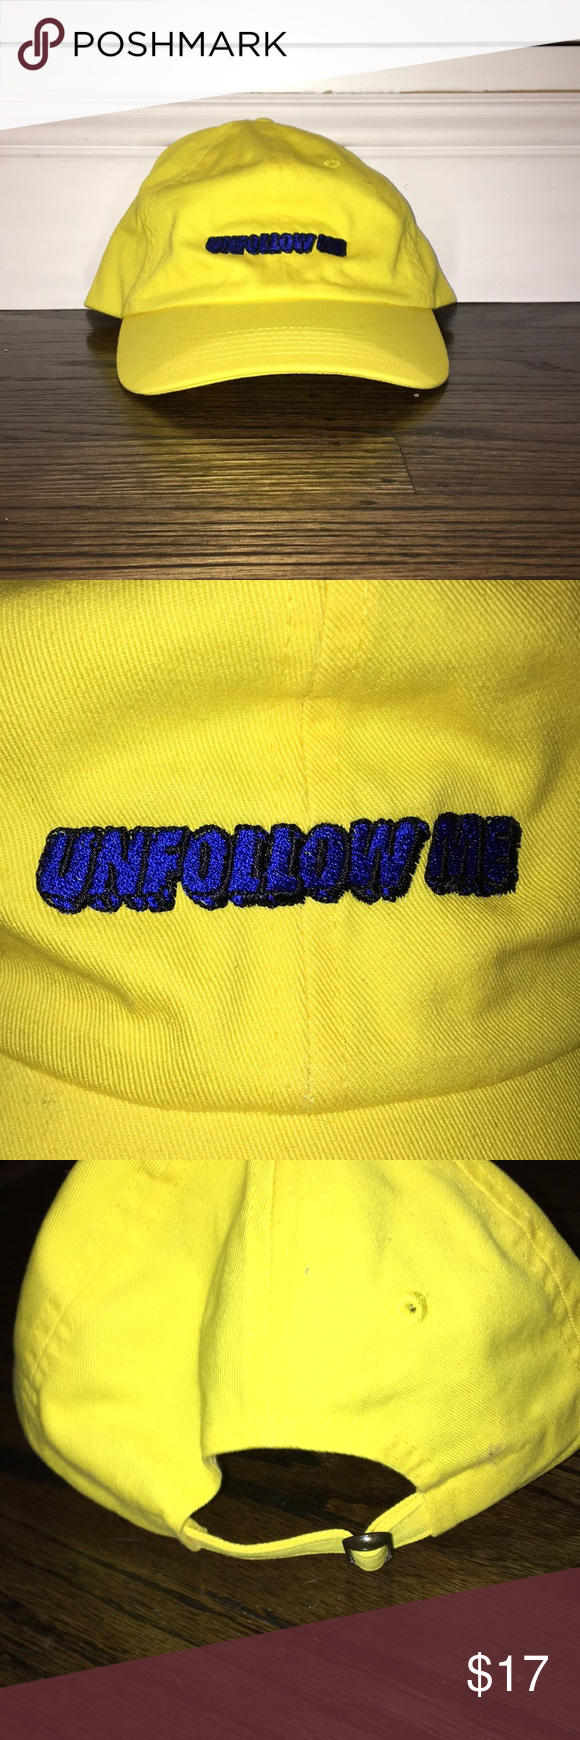 4b15896b111 Kylie Jenner Unfollow Me Yellow Bright Dad Cap Kylie Jenner hat bought from  the Kylie Jenner